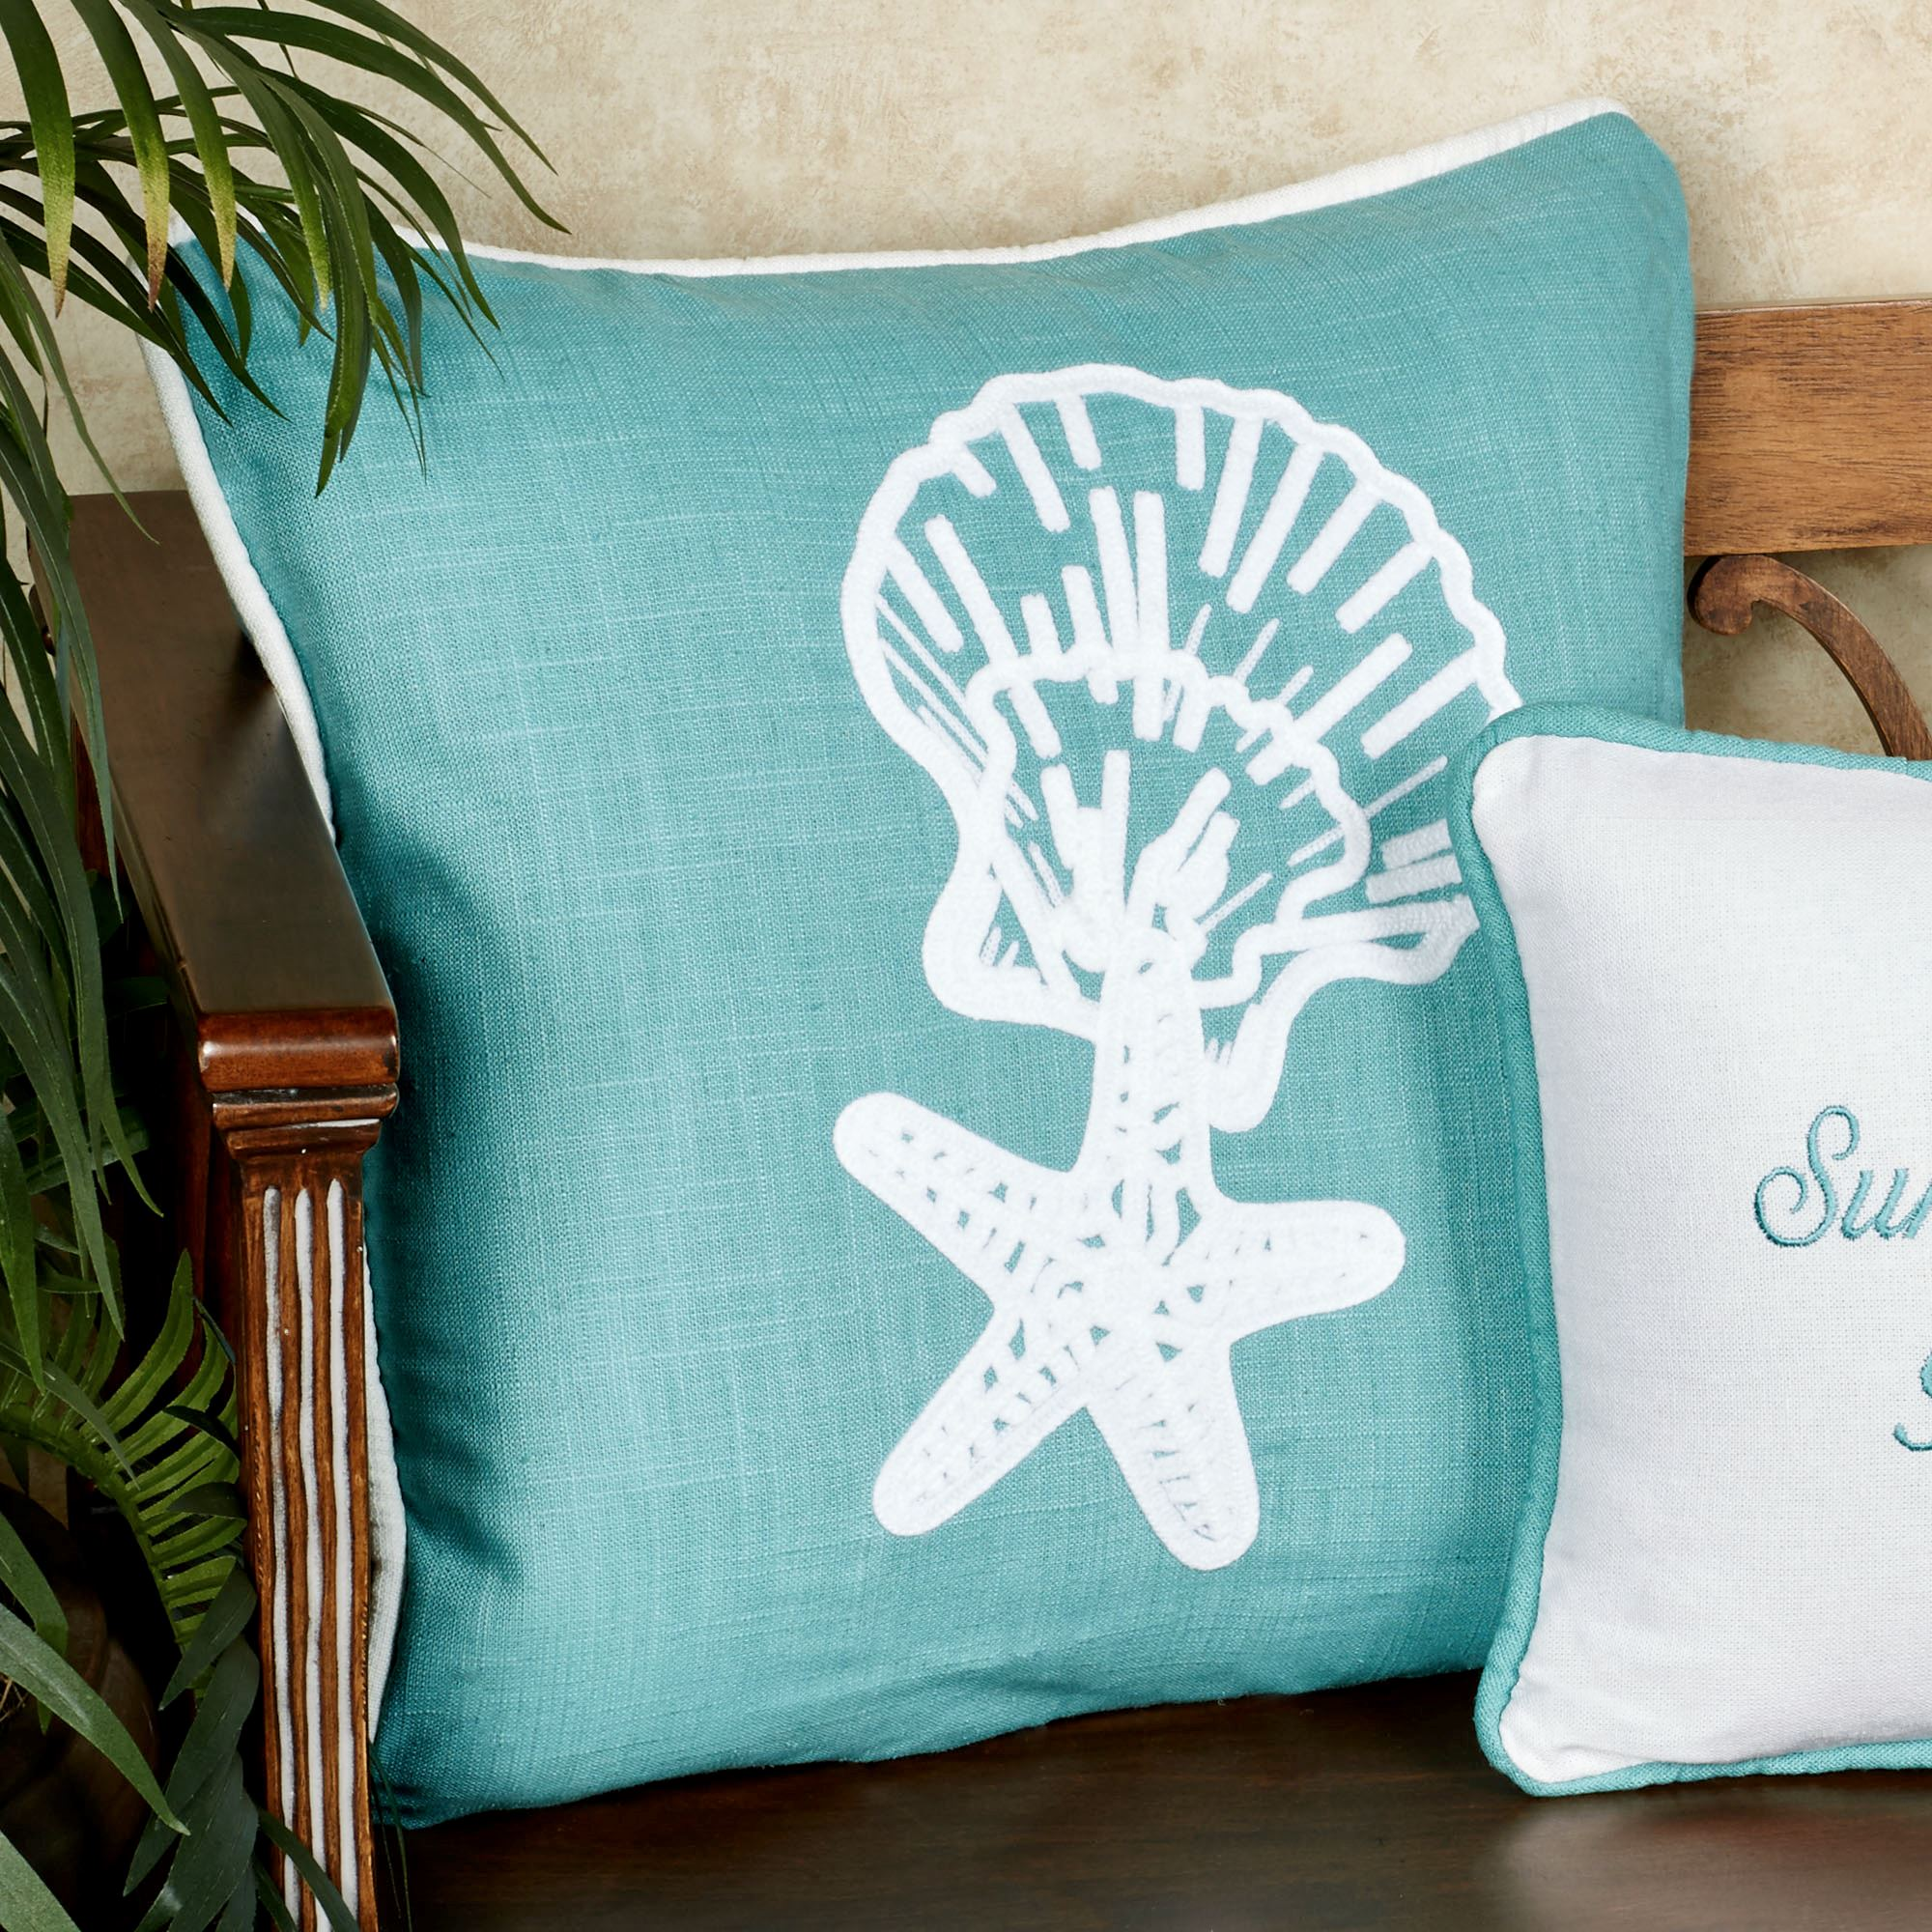 beach artisans pillows the life seaside a better is outdoor teal pillow at pin